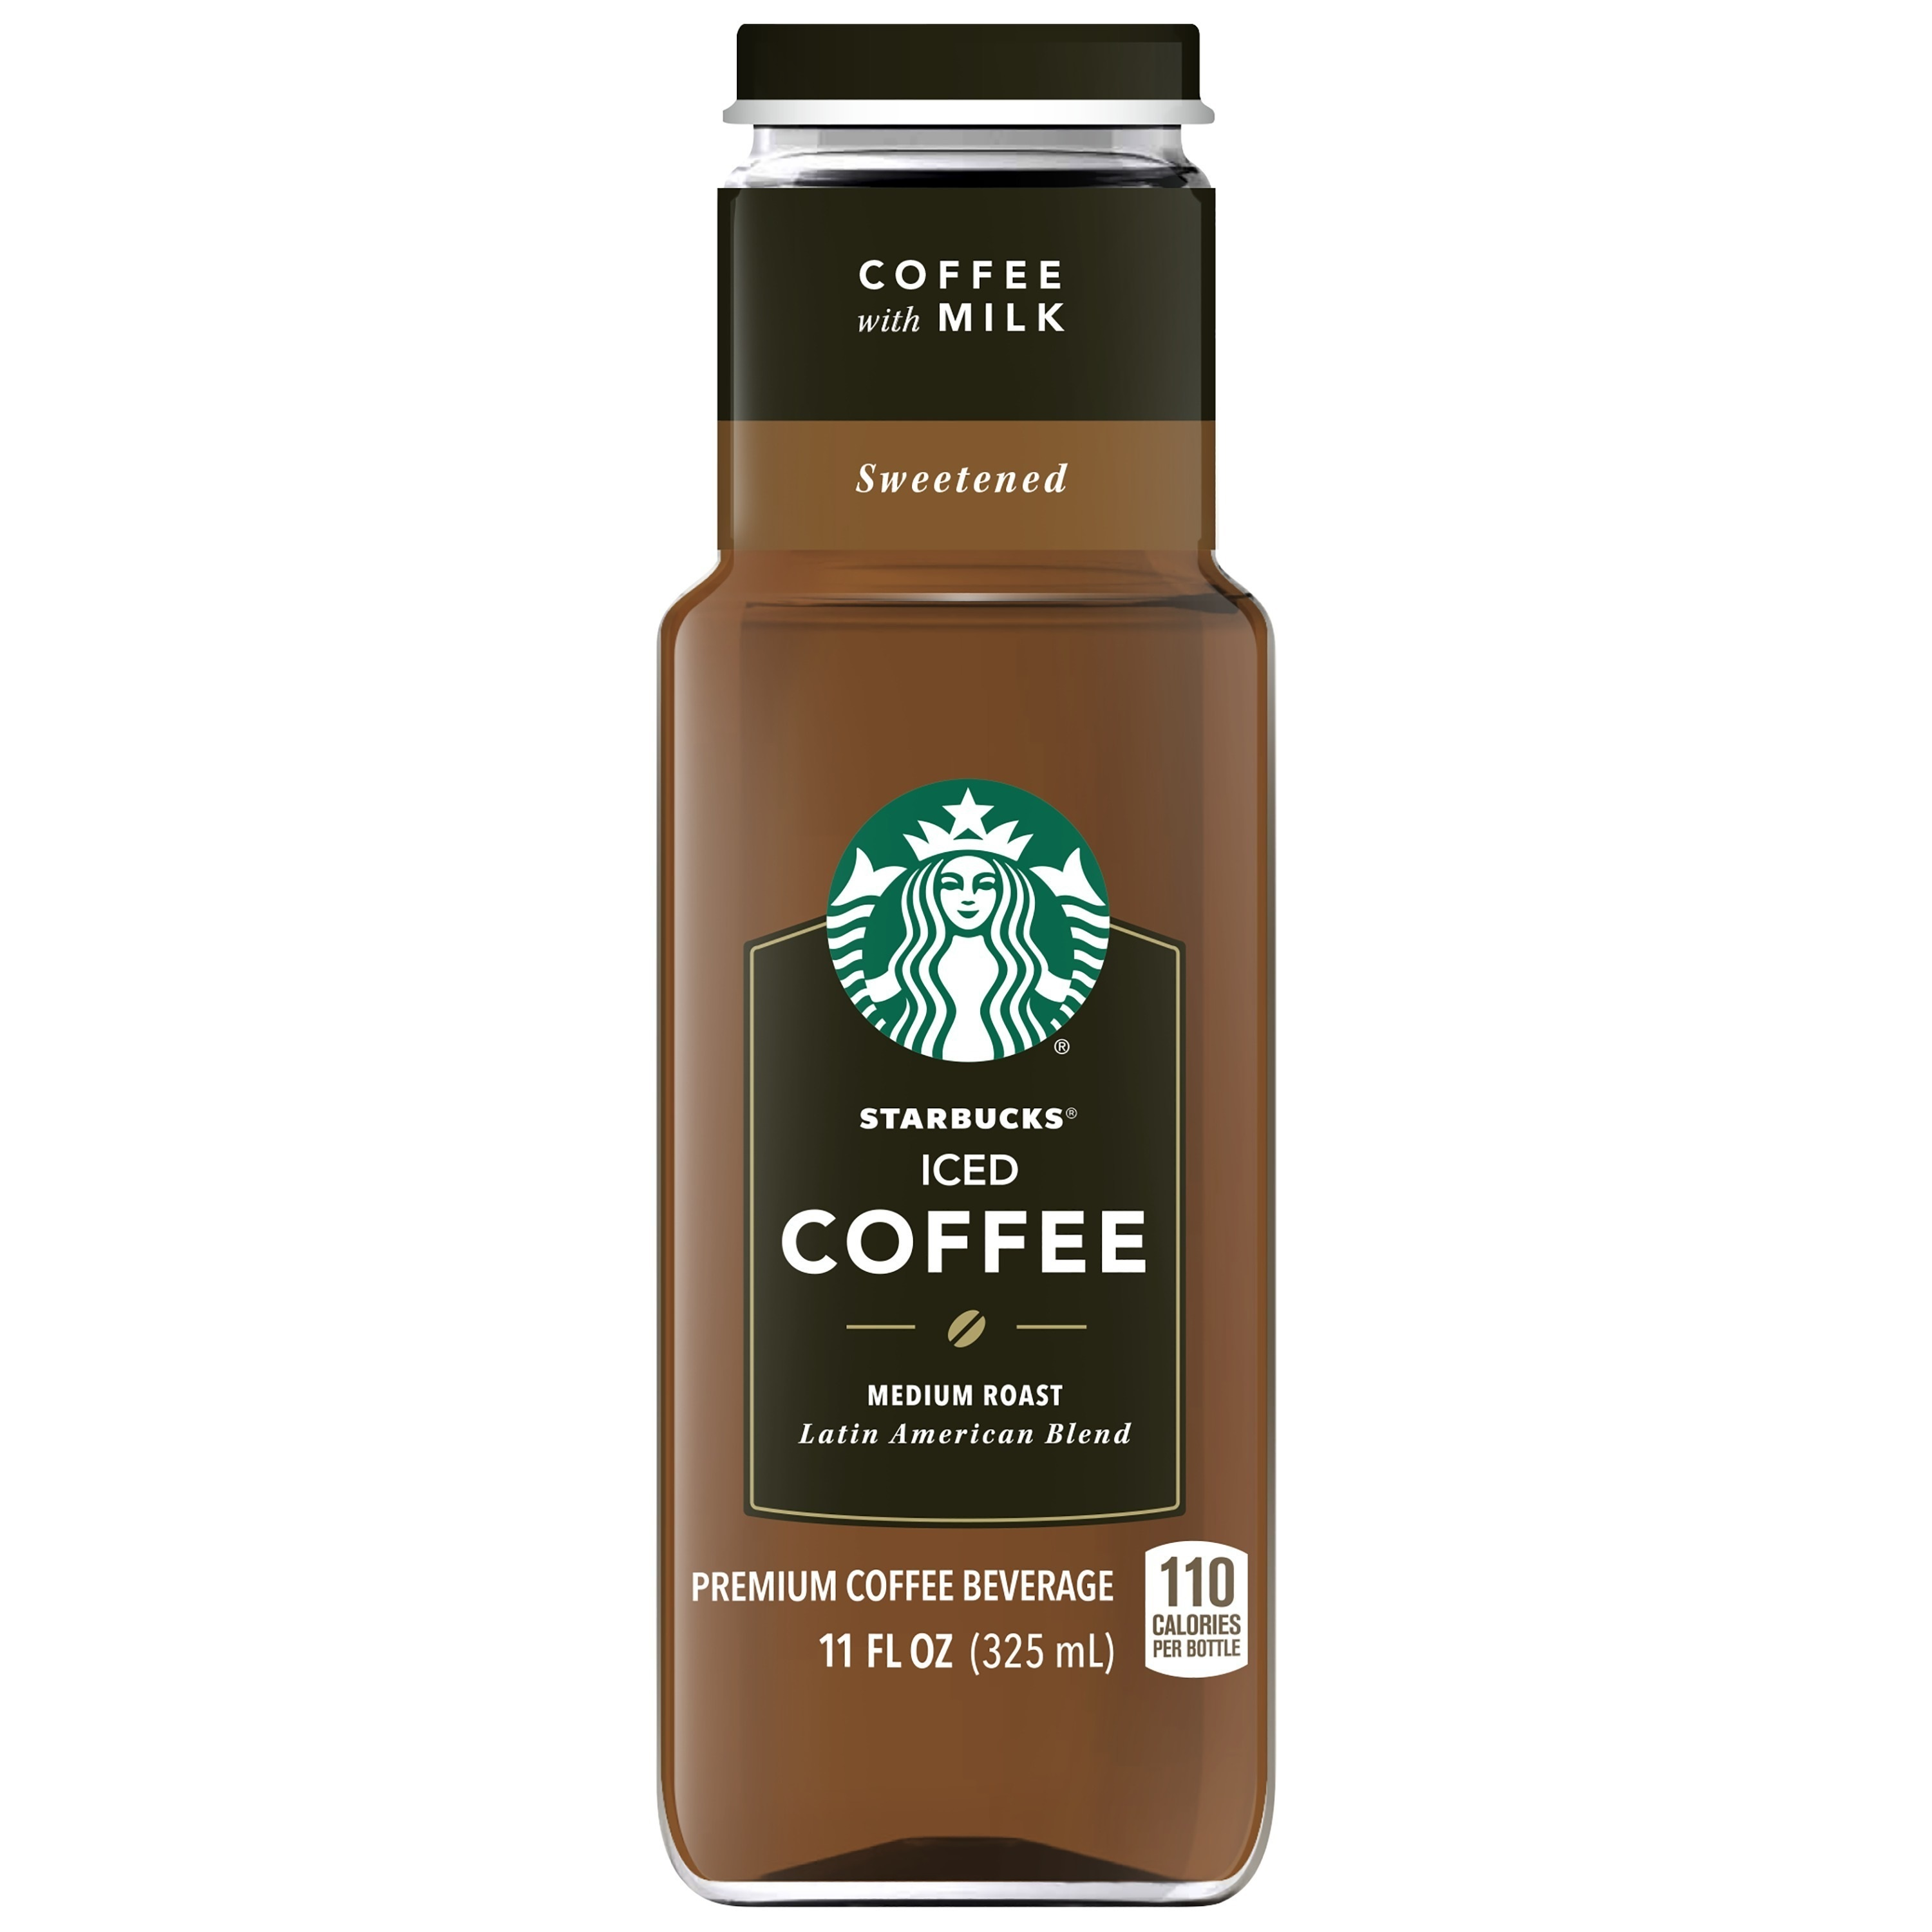 Starbucks Iced Sweetened Black Coffee, Medium Roast, 11 Fl Oz, 8 Ct